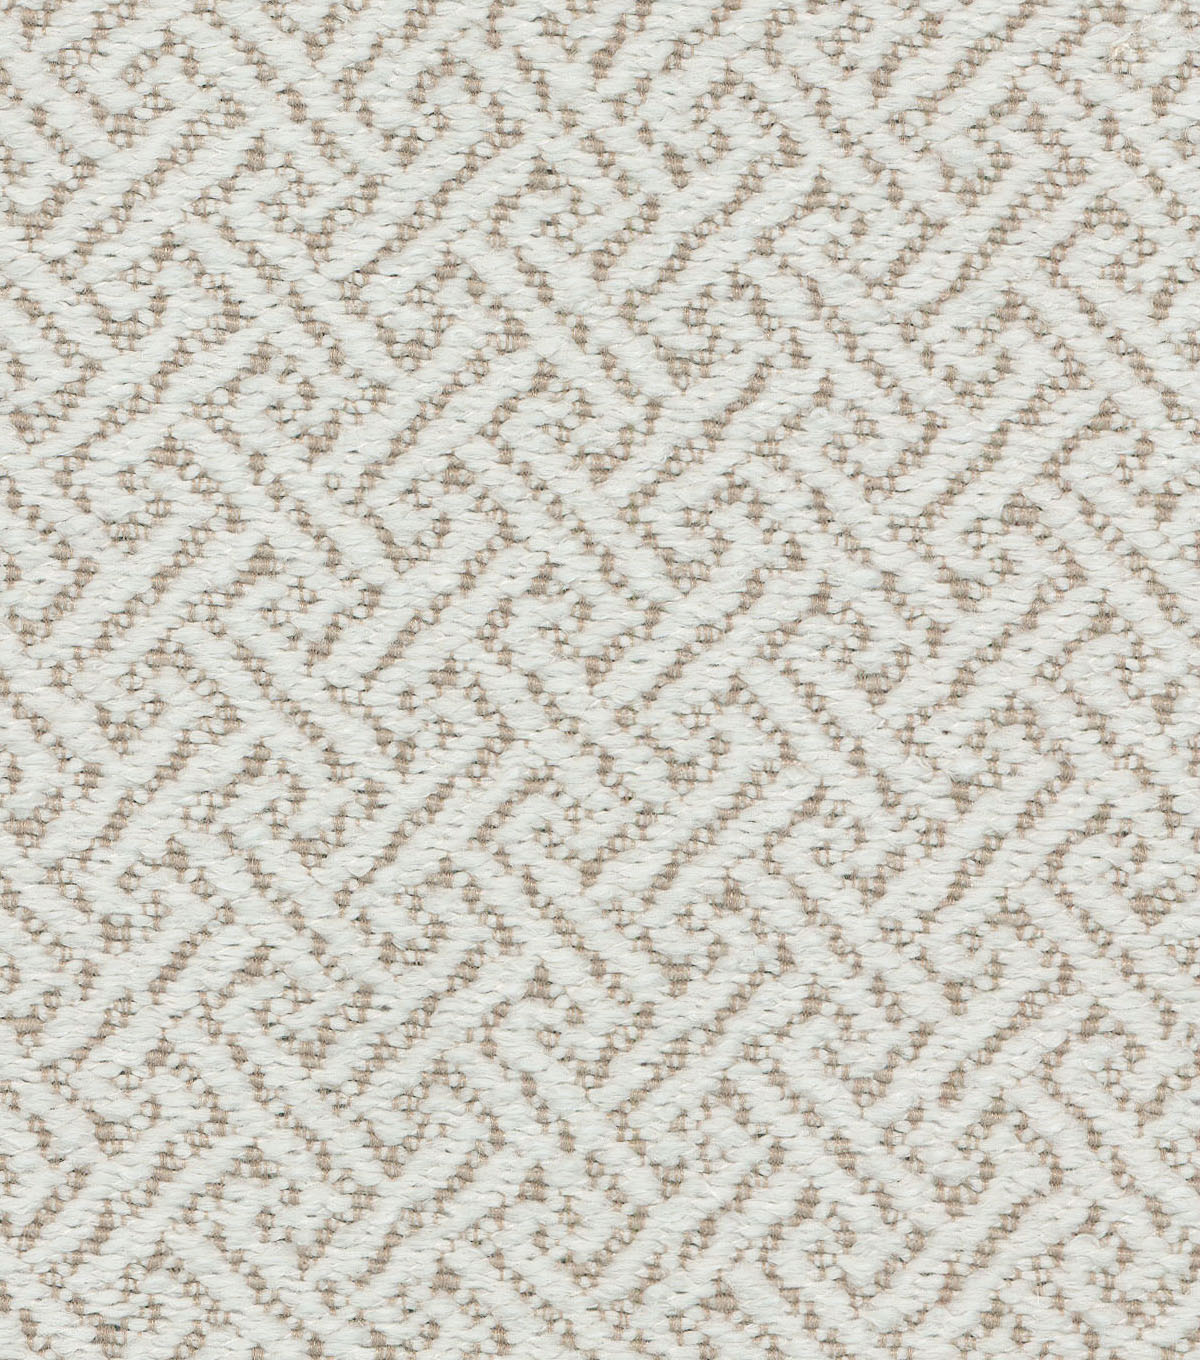 P/K Lifestyles Upholstery Fabric 13x13\u0022 Swatch-Sidekick Pebble